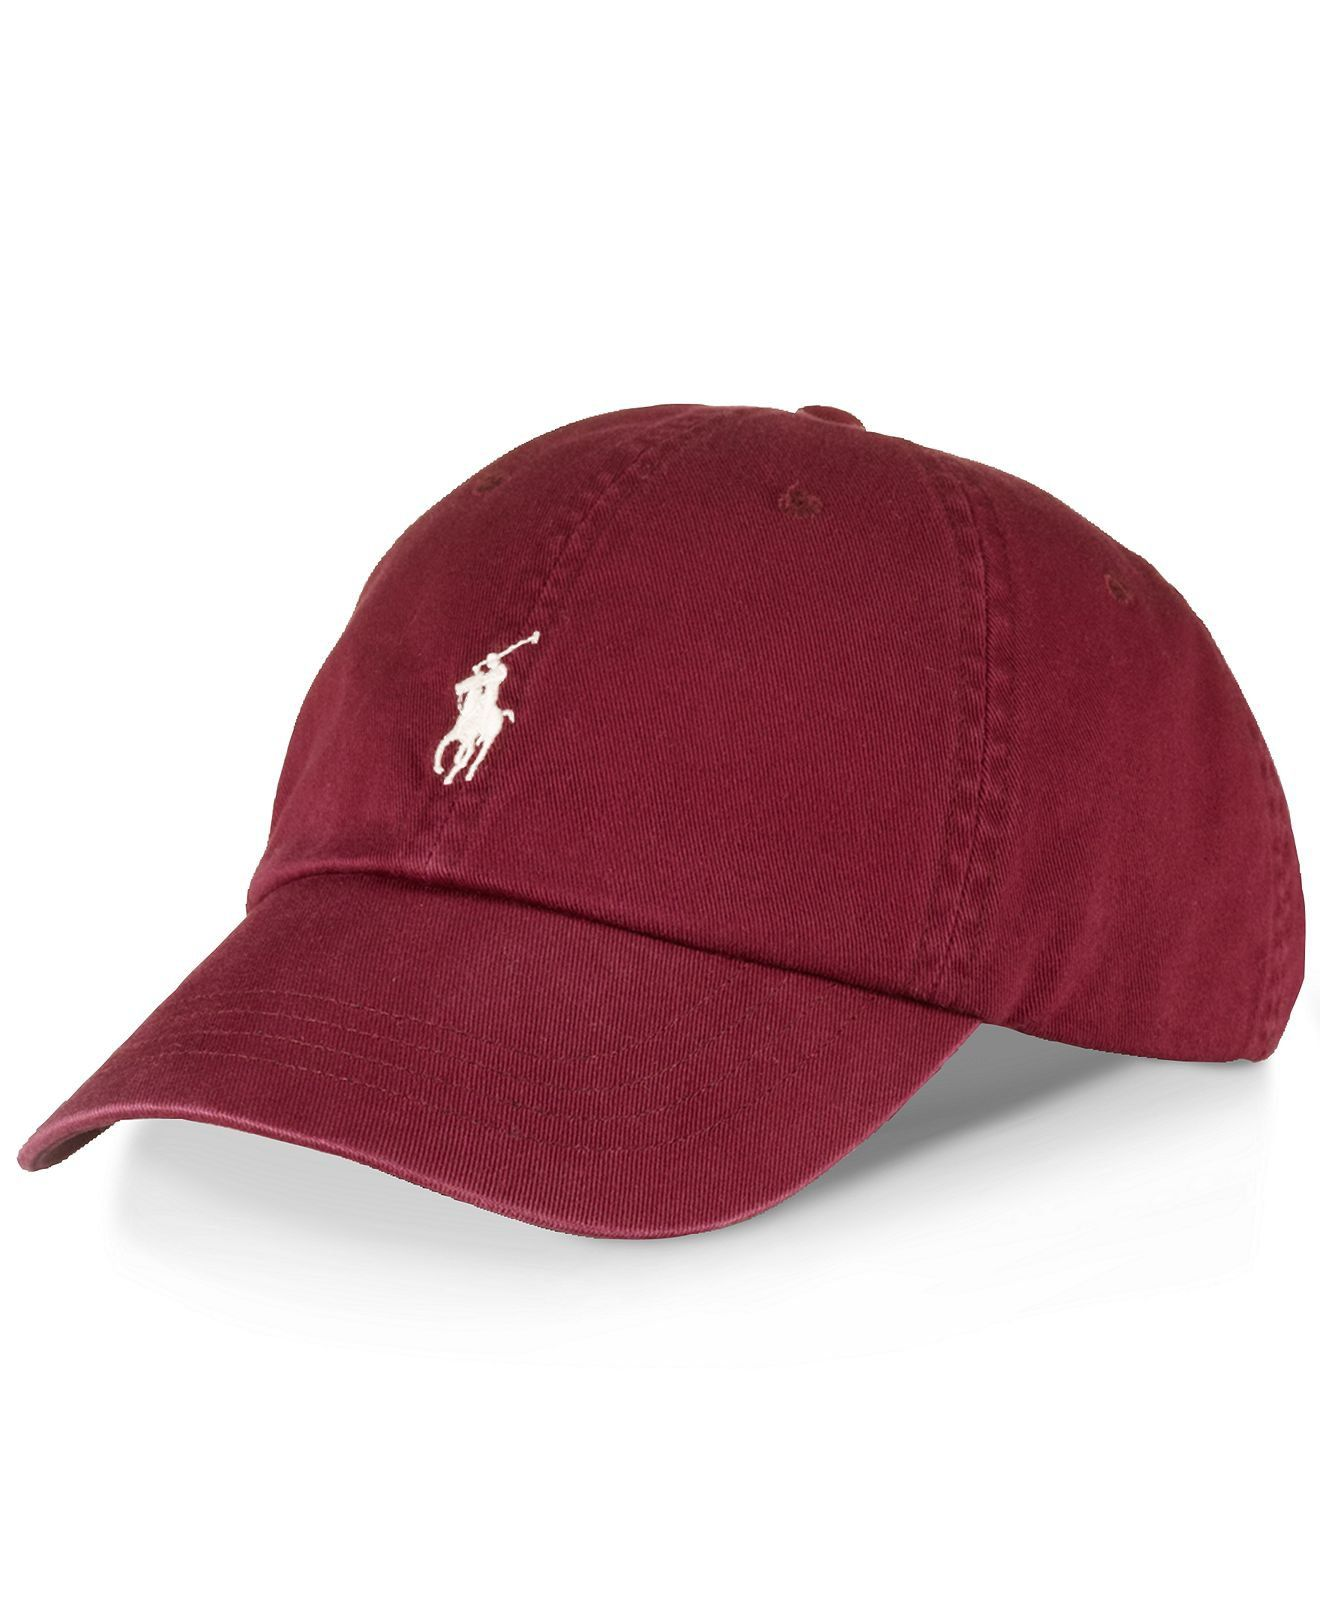 Polo Ralph Lauren Hat 5fb99c58f2e